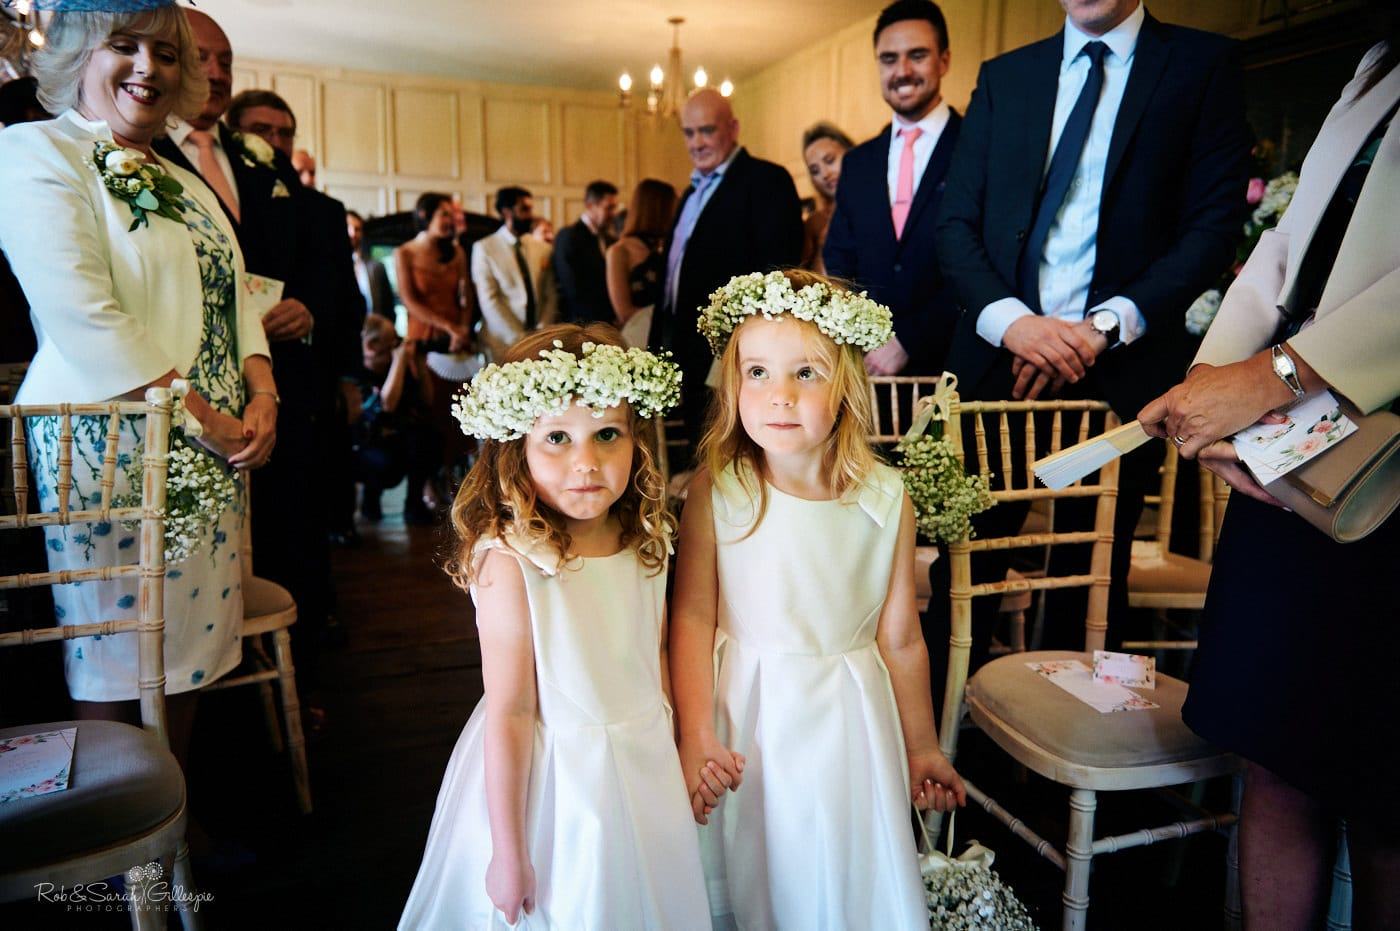 Flowegirls make entrnace at Gorcott Hall wedding ceremony